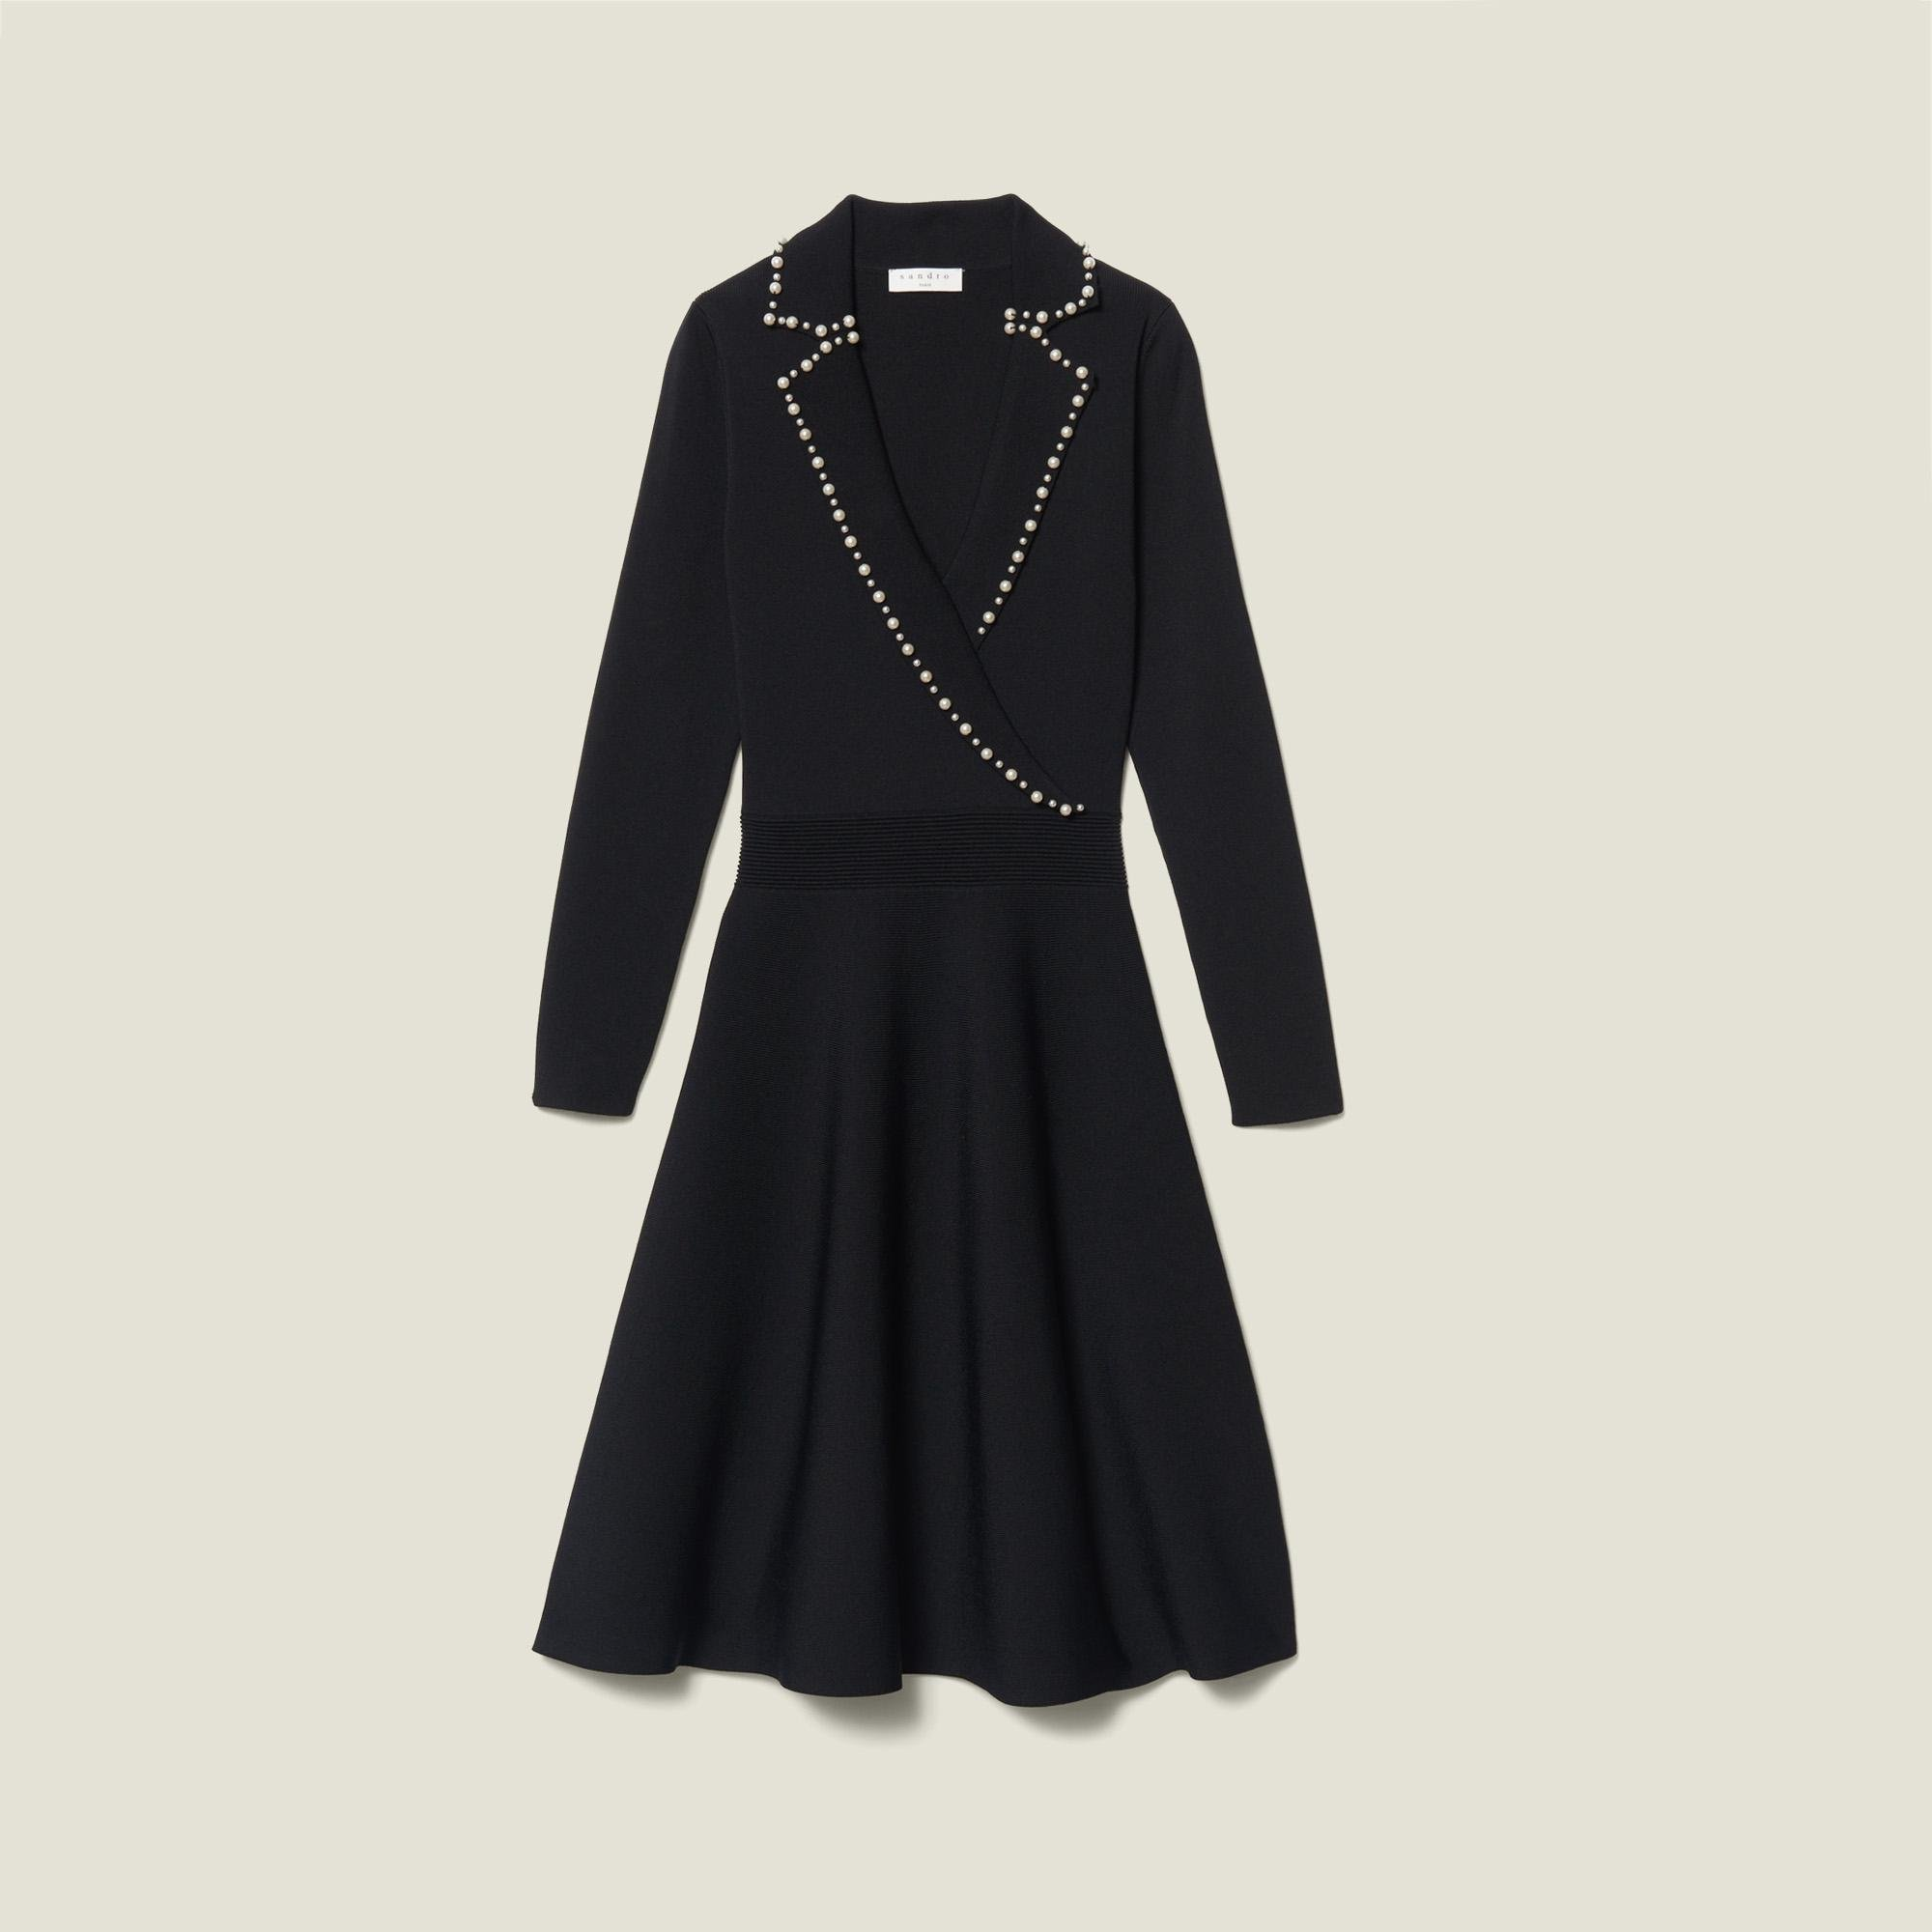 Short knit dress with tailored collar